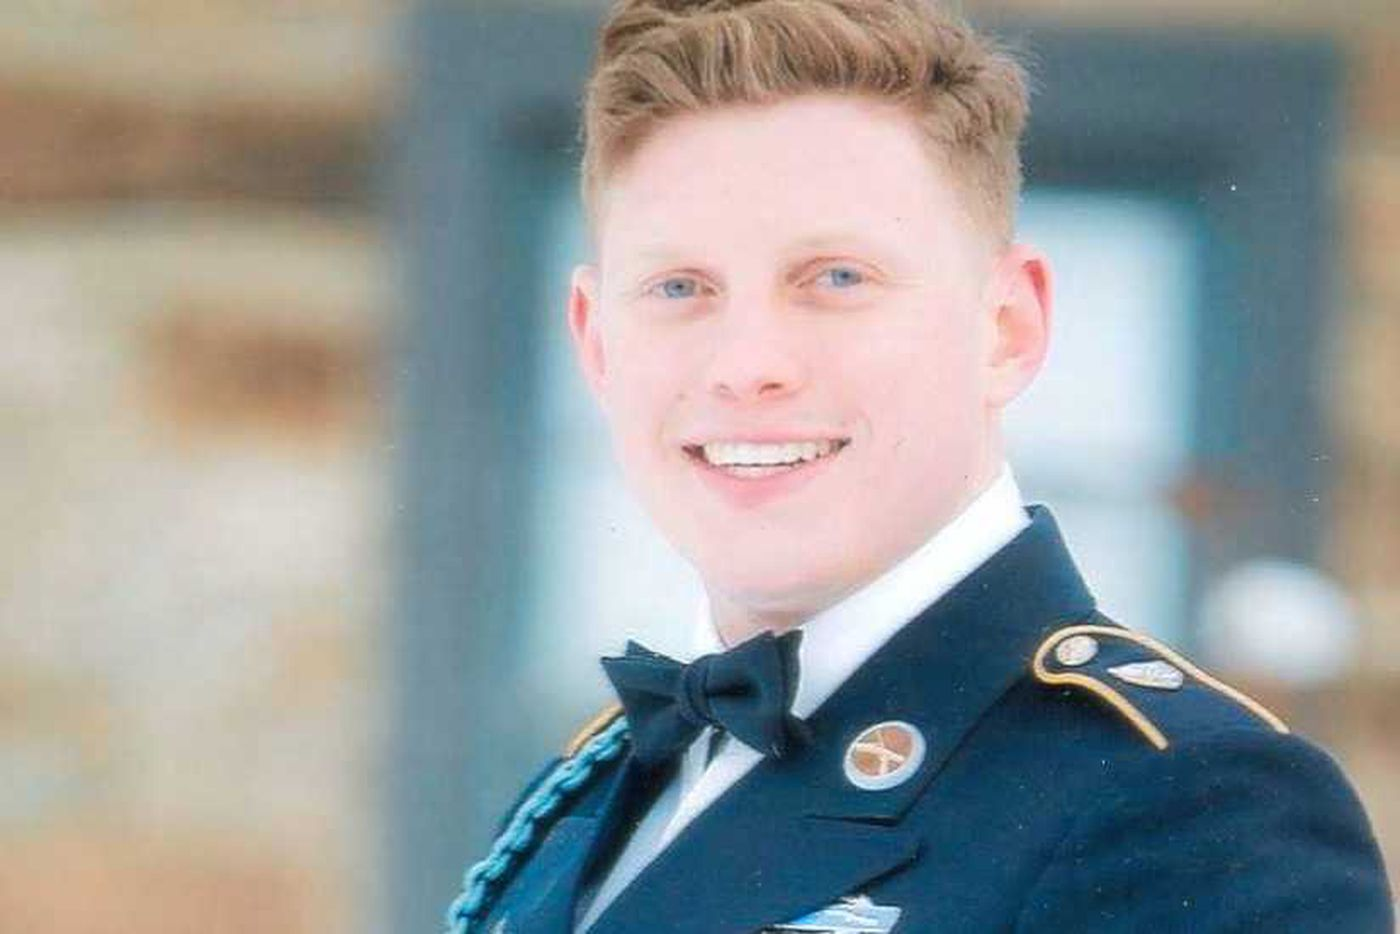 Devin J. Kuhn, 24, Army Ranger and outdoorsman, dead in accidental shooting at base